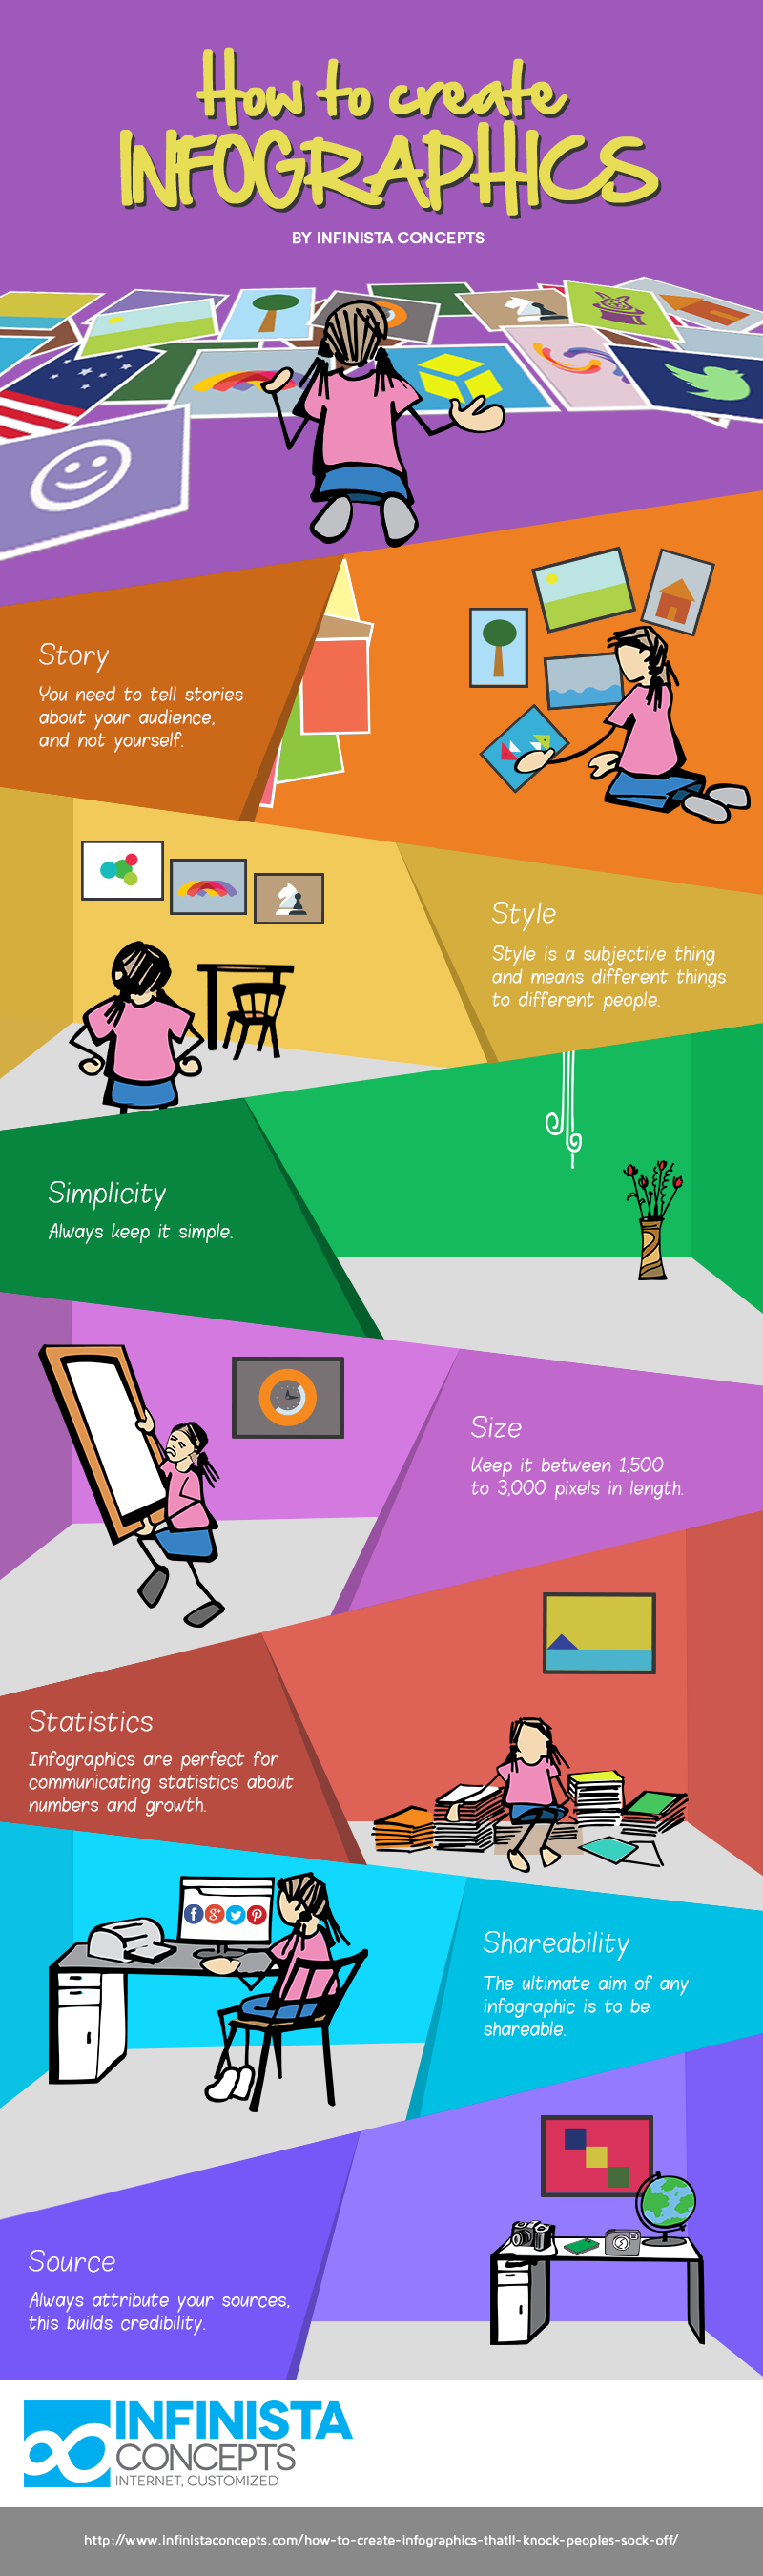 Infographic: How To Create Infographics